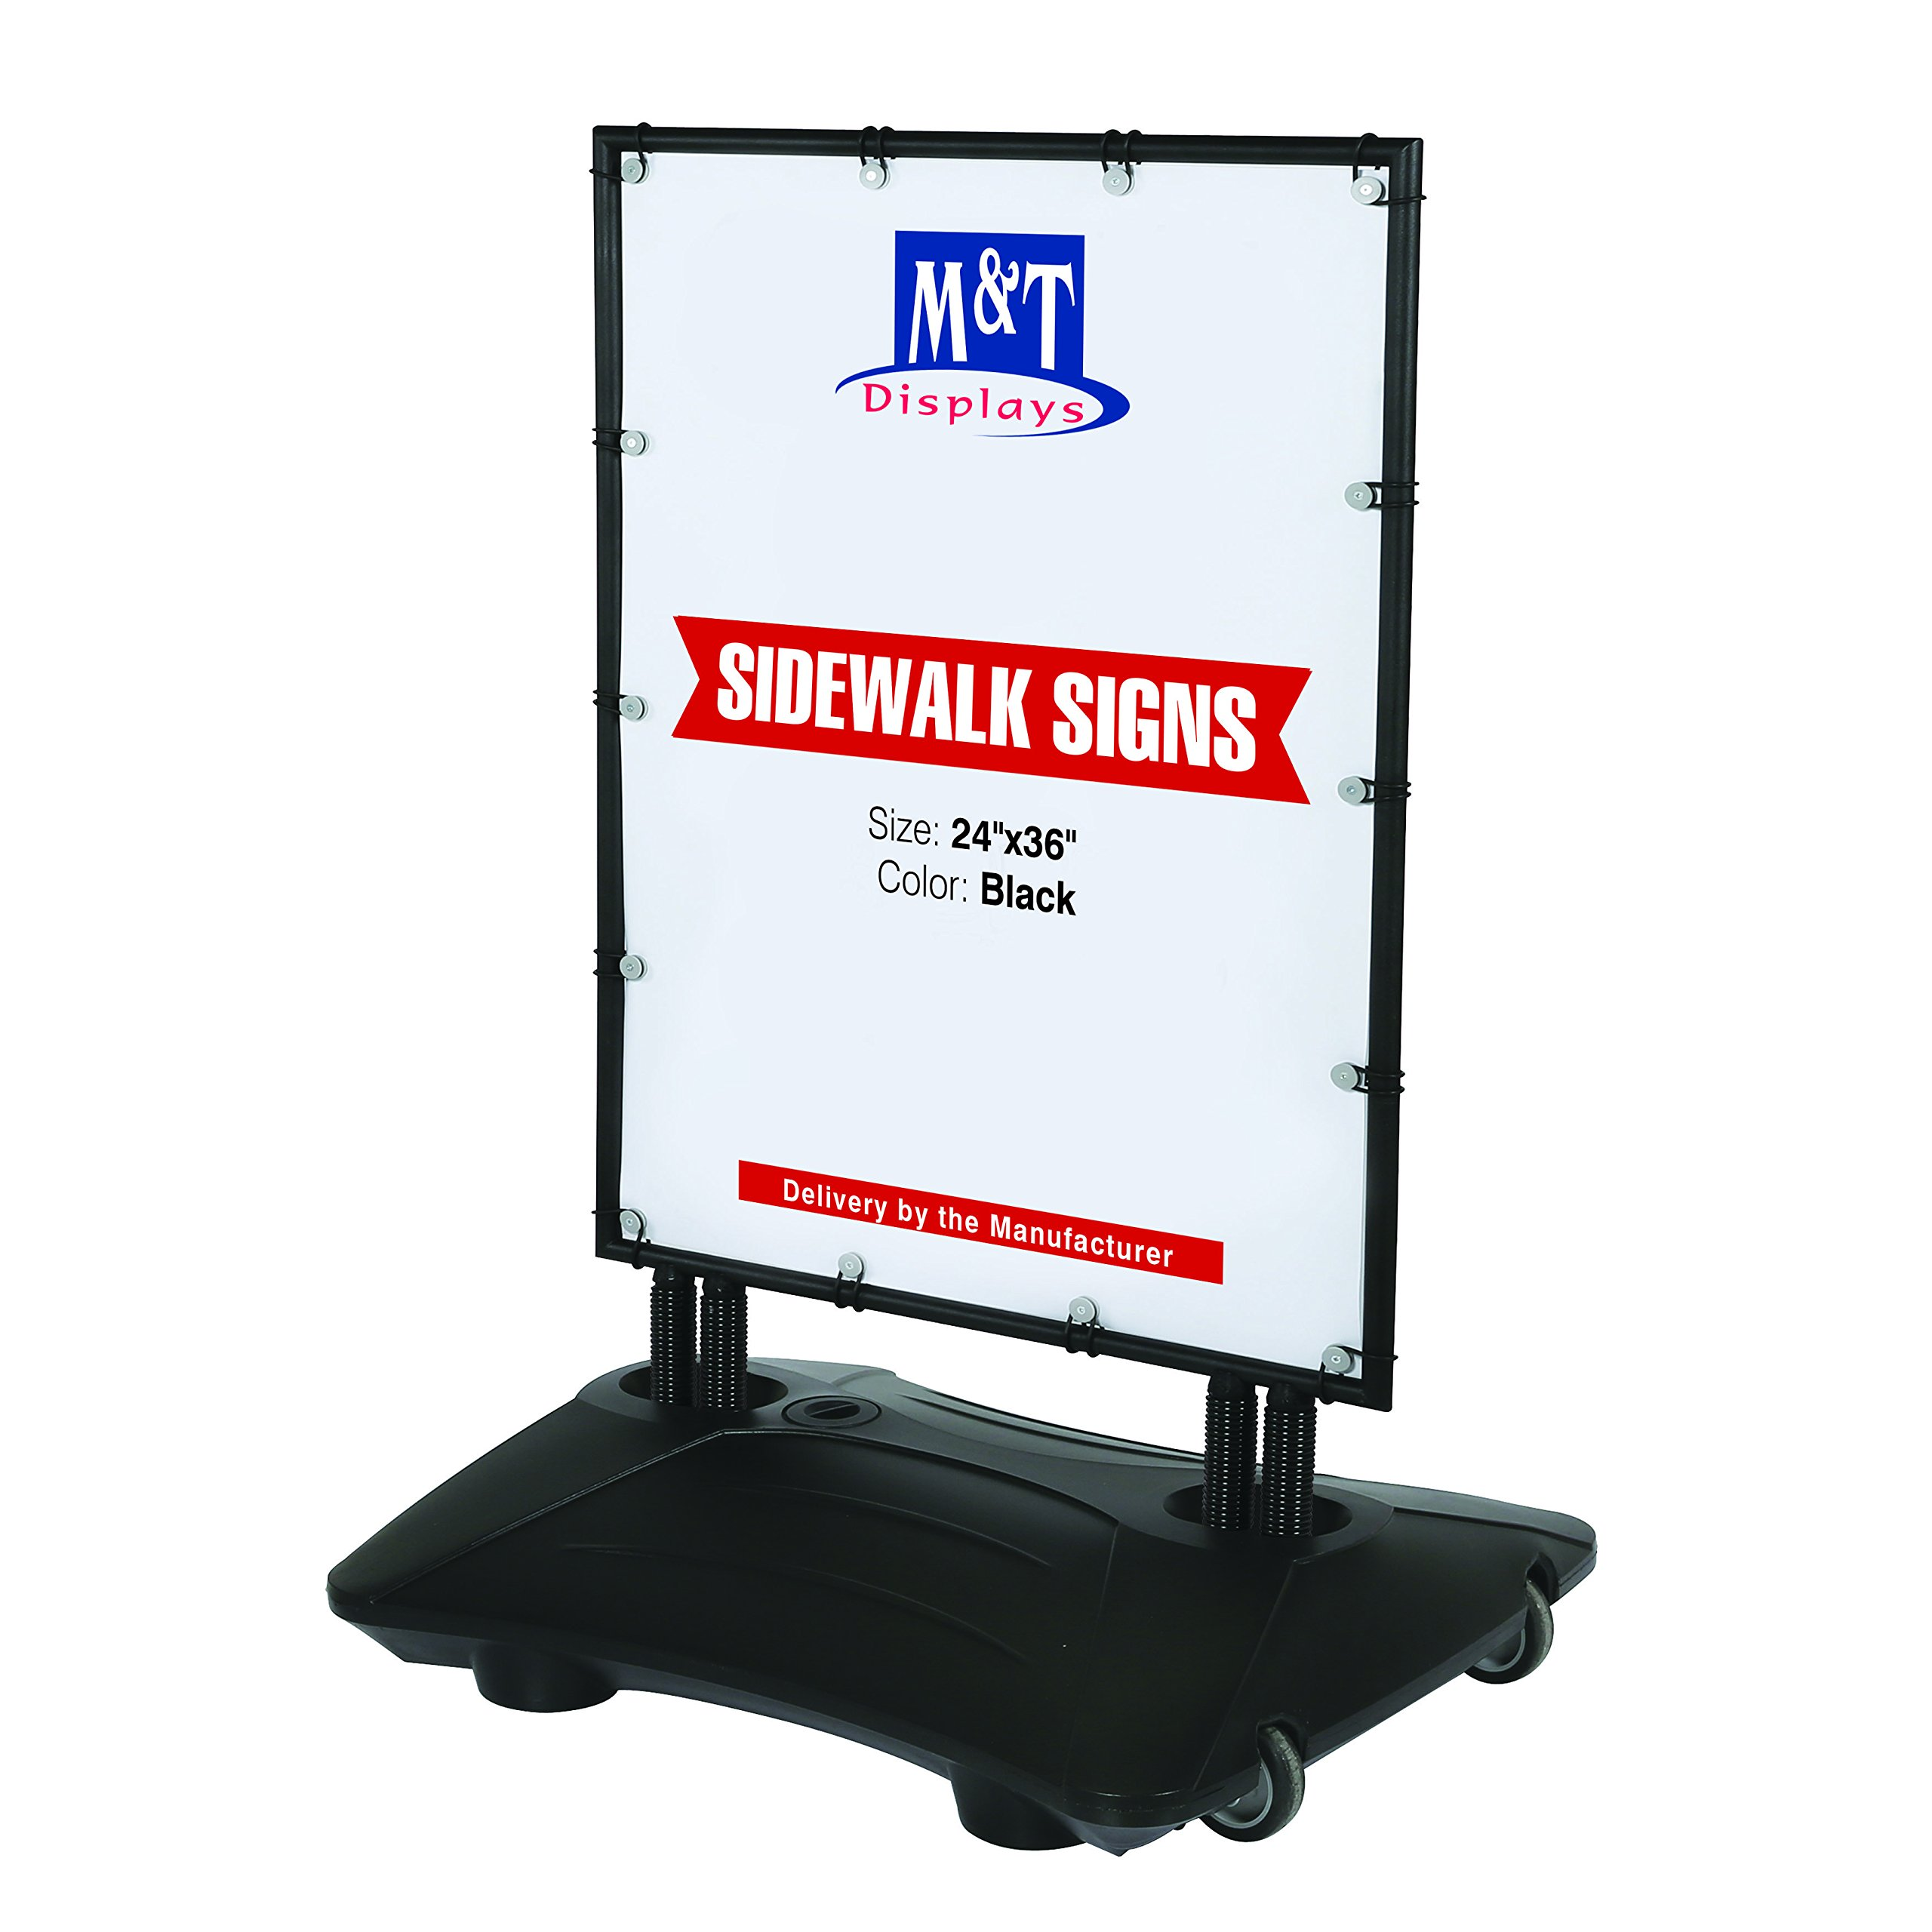 Outdoor Advertising Display Banner WindPro Sidewalk Sign Weatherproof Side, 24x36 Poster Size, Black Frame, Black Water Base, High Wind Resistant, Reusable and dura